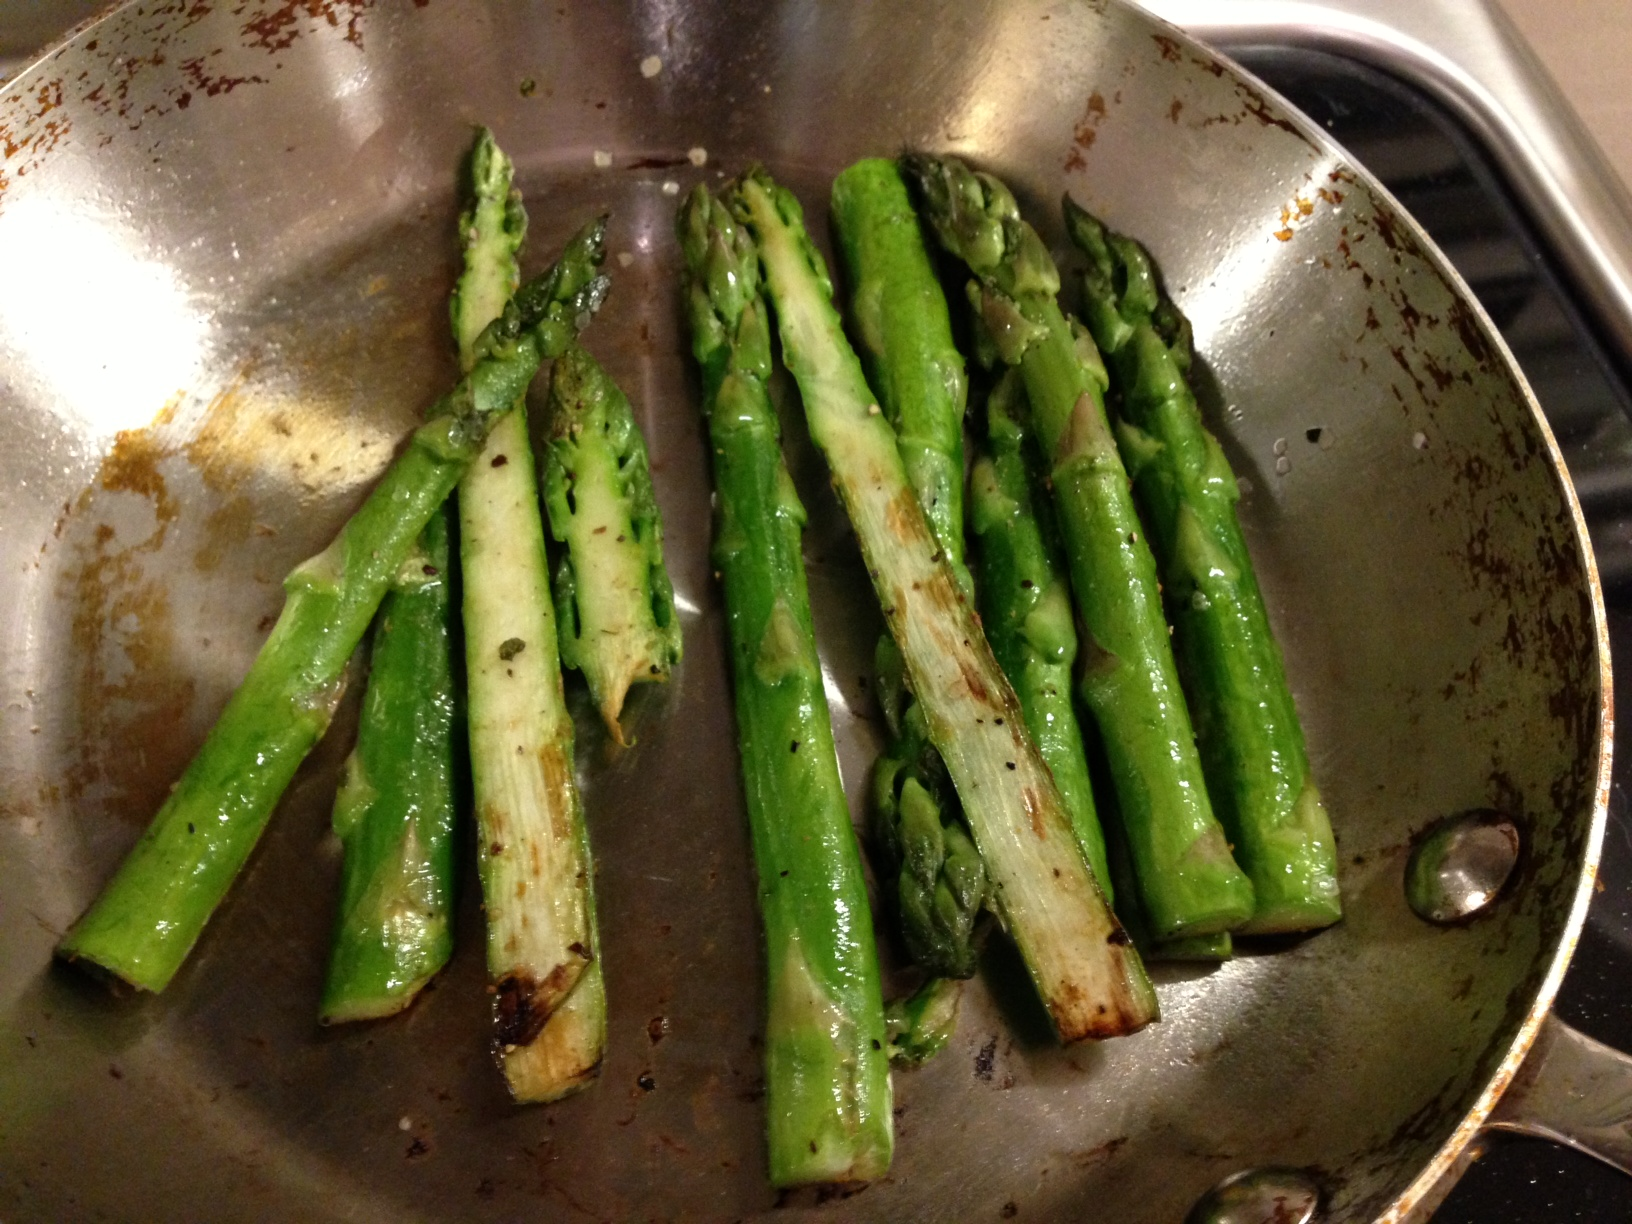 Let The Asparagus Cook Without Touching It For Around 5 Minutes, Depending  On The Size Of Your Asparagus Toss, And Continue Cooking For Another 5  Minutes